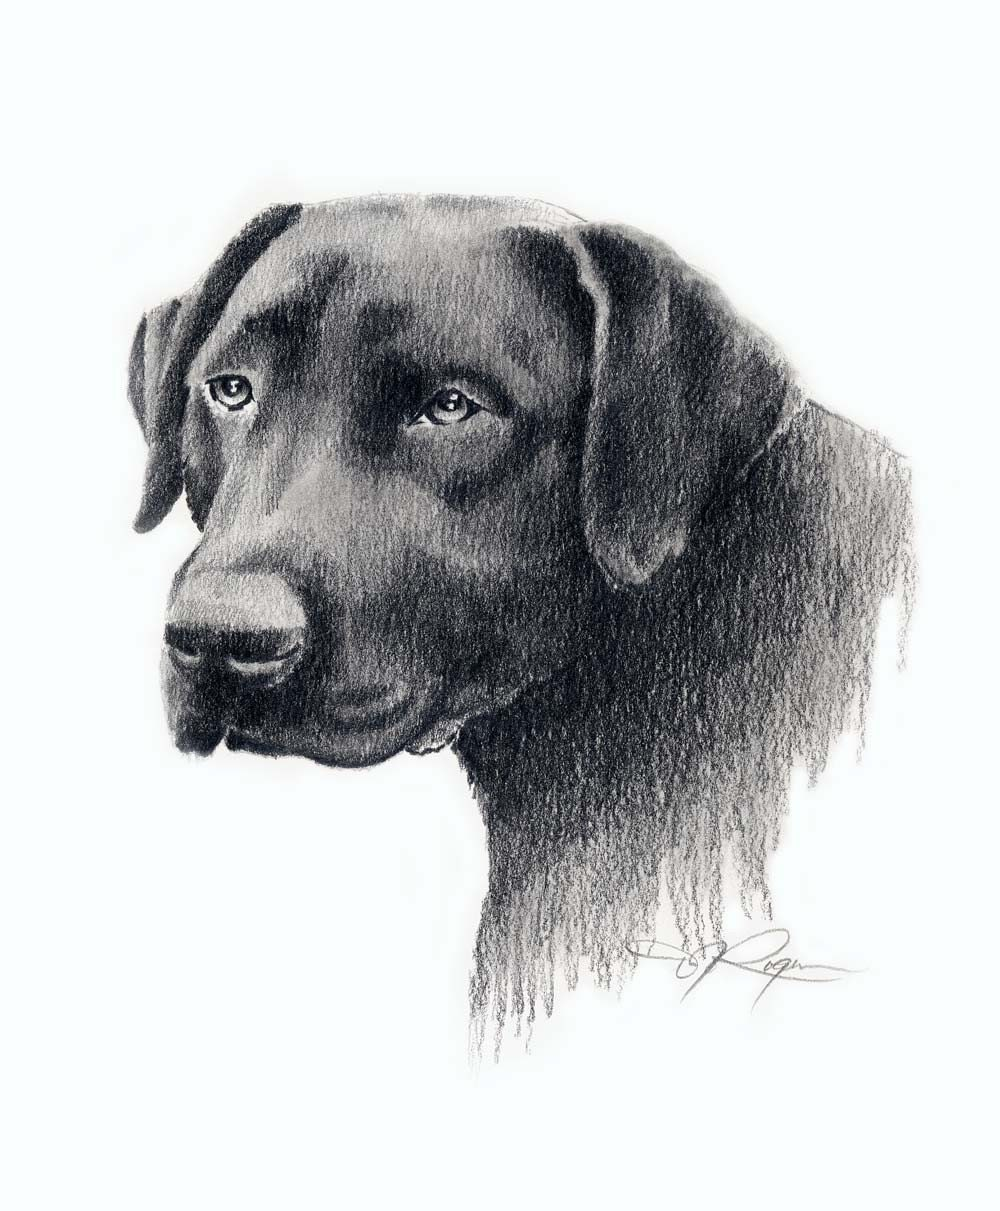 BLACK LAB Drawing Labrador Dog Art Print Signed By Artist DJ